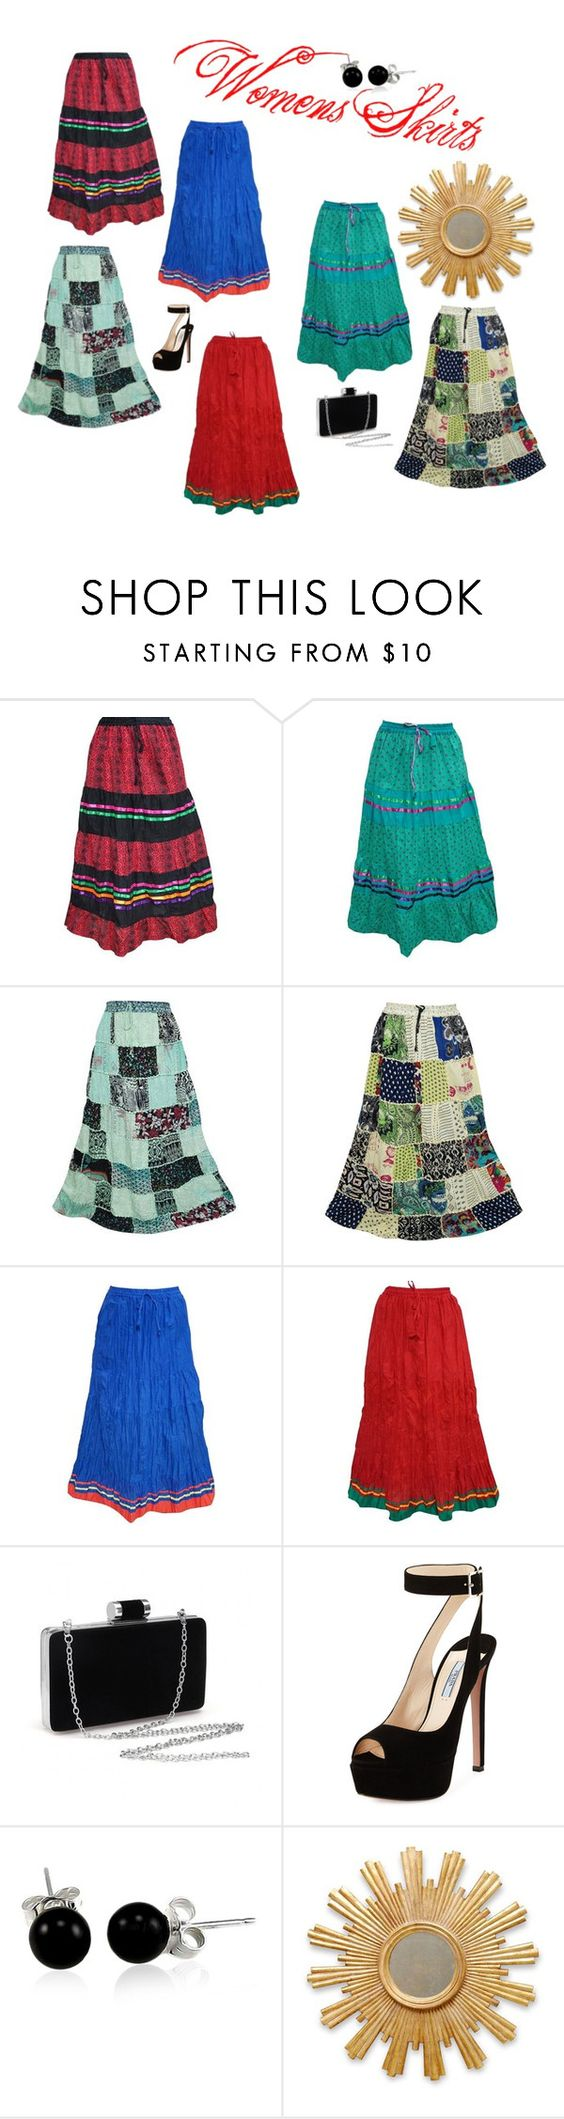 """""""Womens Maxi Skirts  (By Indiatrendzs)"""" by lavanyas-trendzs ❤ liked on Polyvore featuring Prada, Bling Jewelry, gift and skirts"""